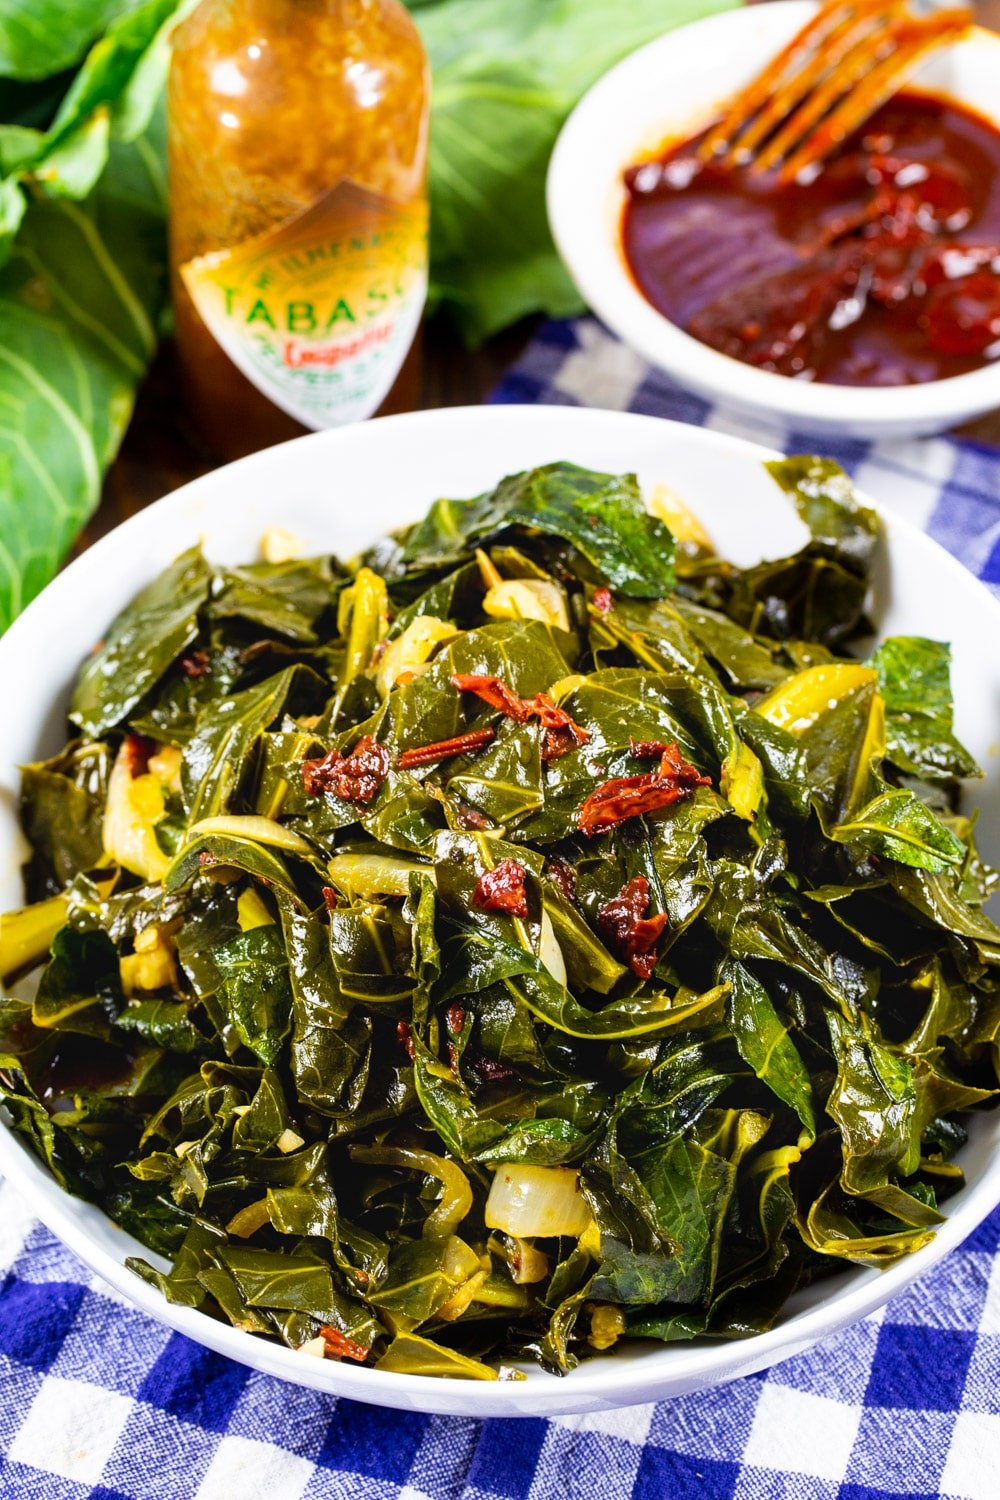 Chipotle Collard Greens in bowl with a bottle of hot sauce.